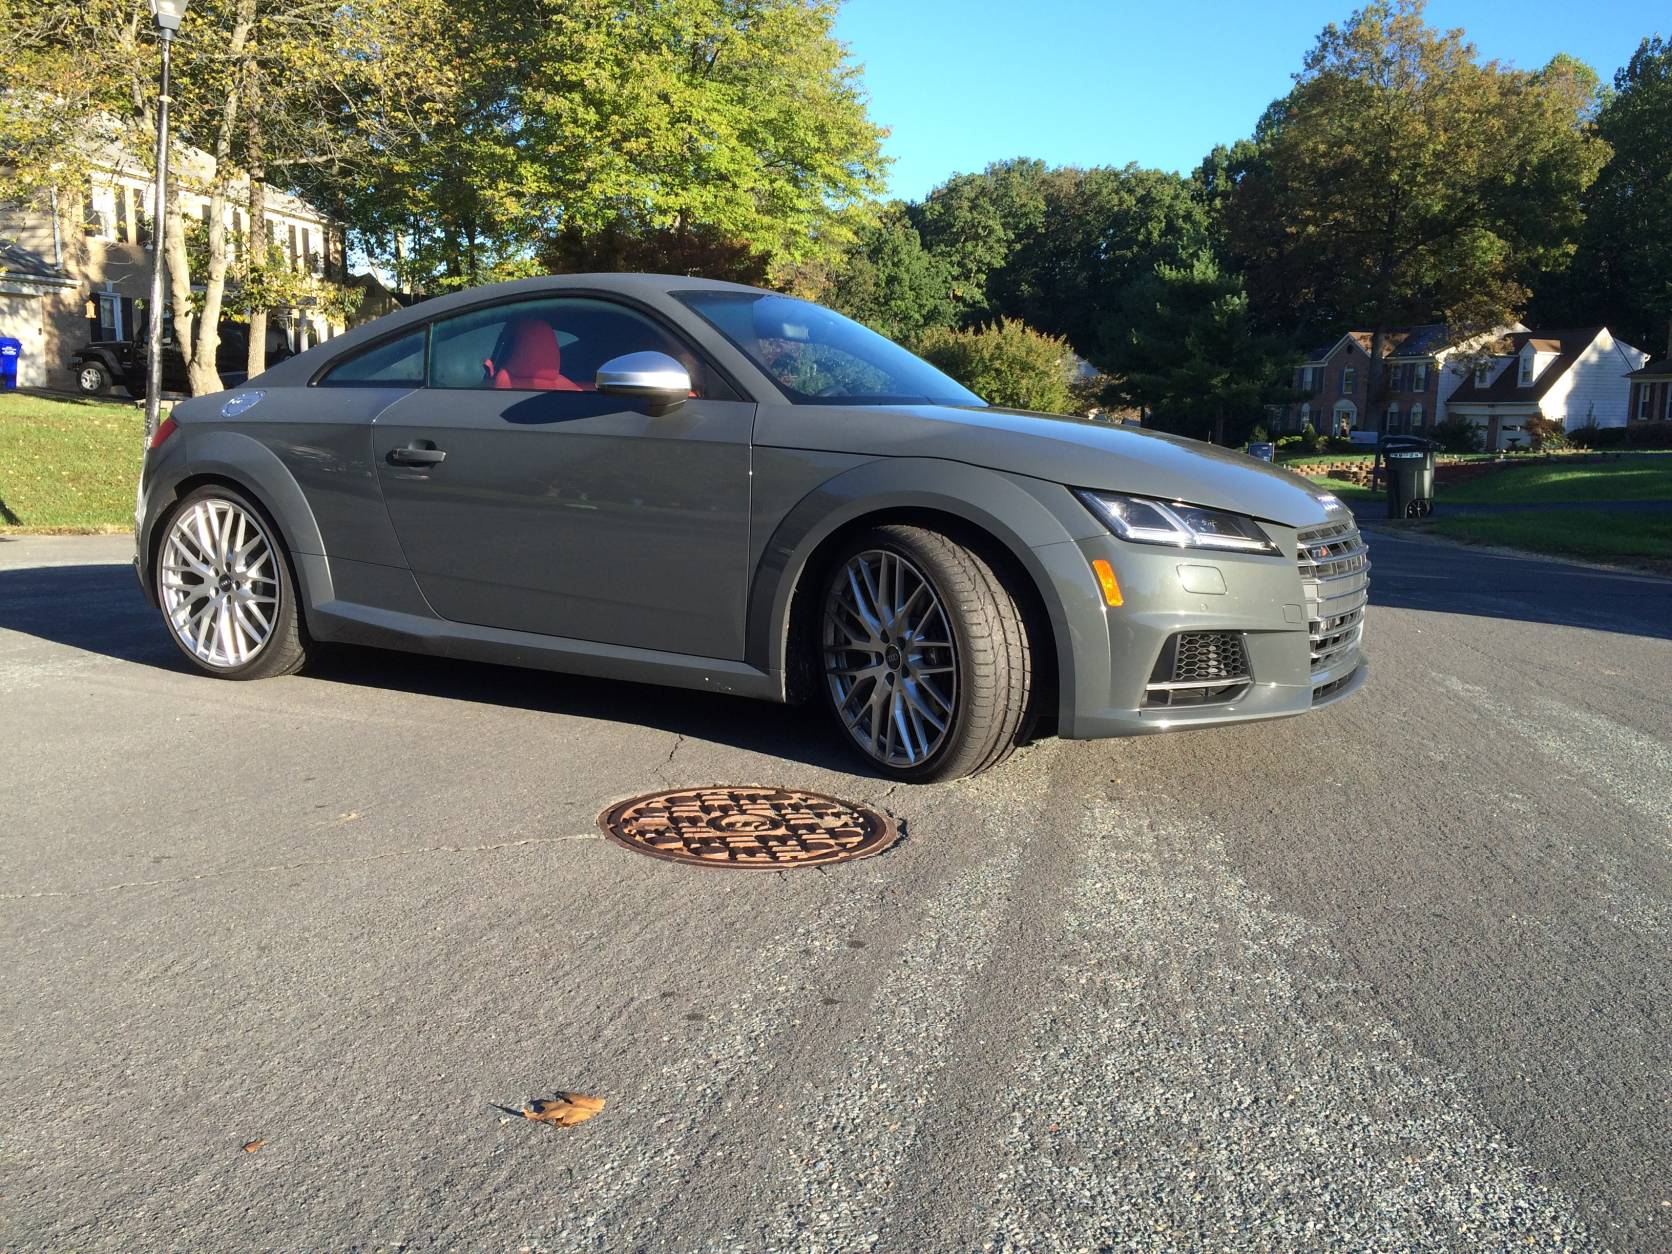 Audi TTS spices up the commute | WTOP